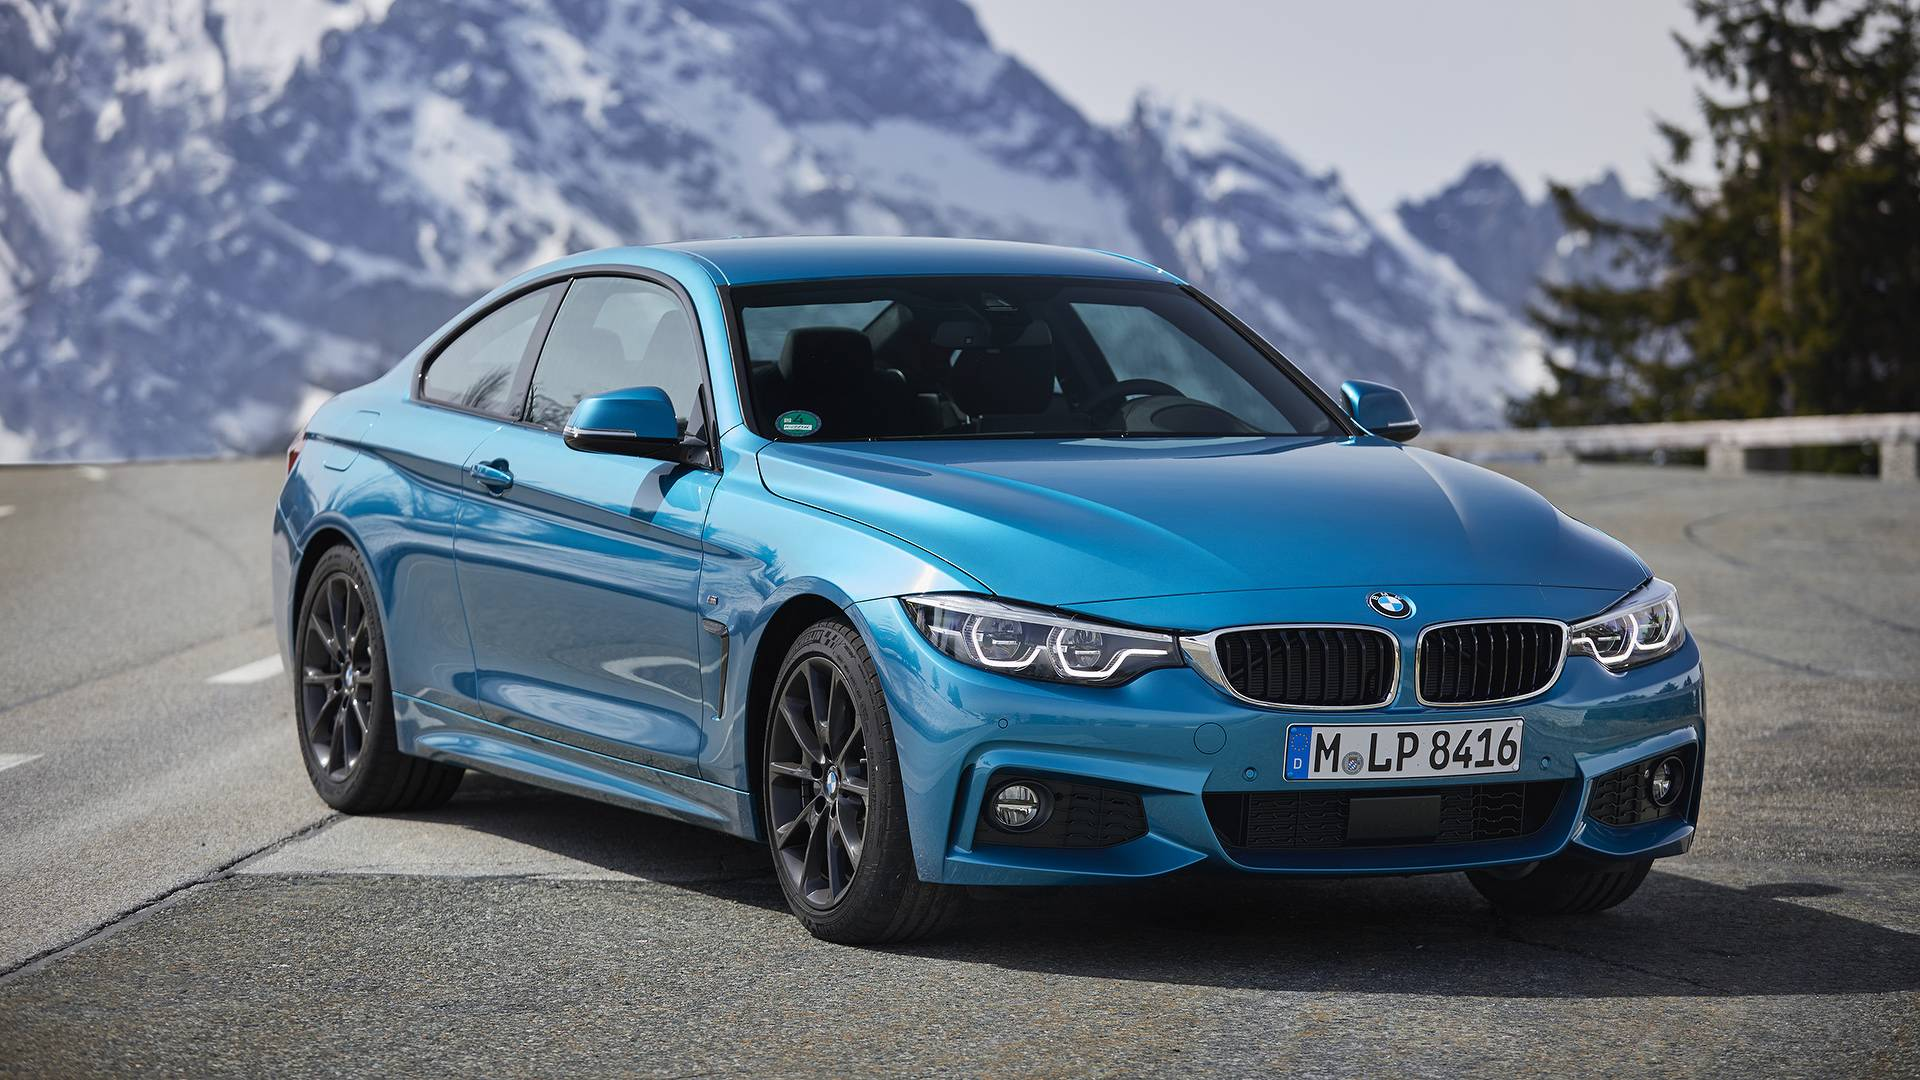 2019 Bmw 4 Series Gets Pricier But Packs More Goodies